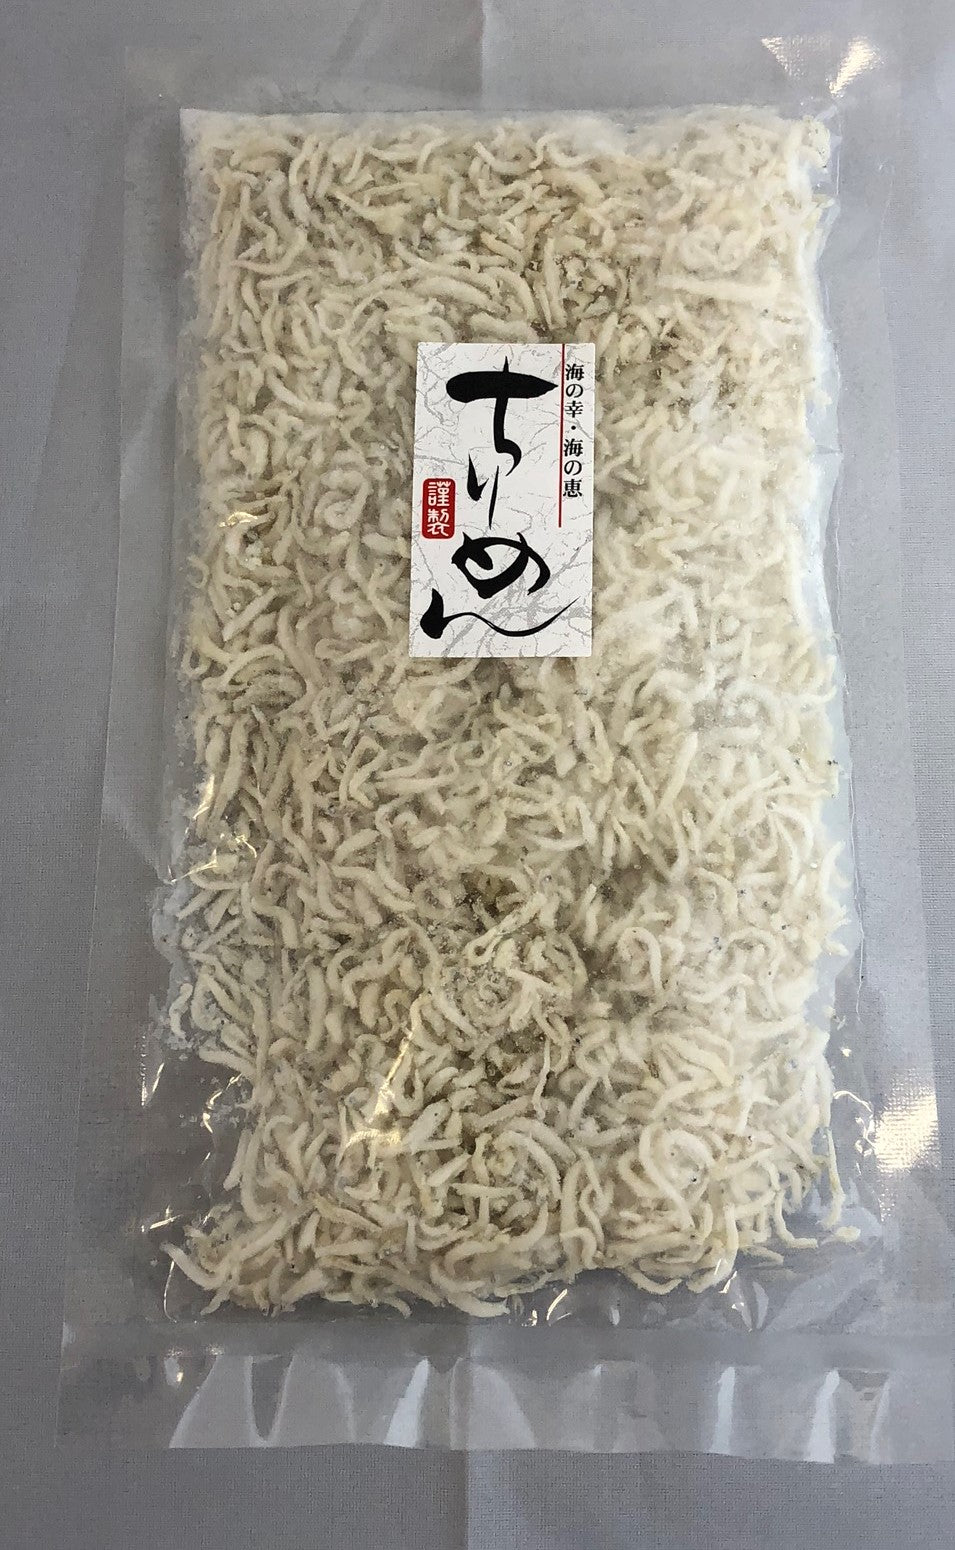 Dried young Sardine Frozen / ちりめん 冷凍 100g - Konbiniya Japan Centre